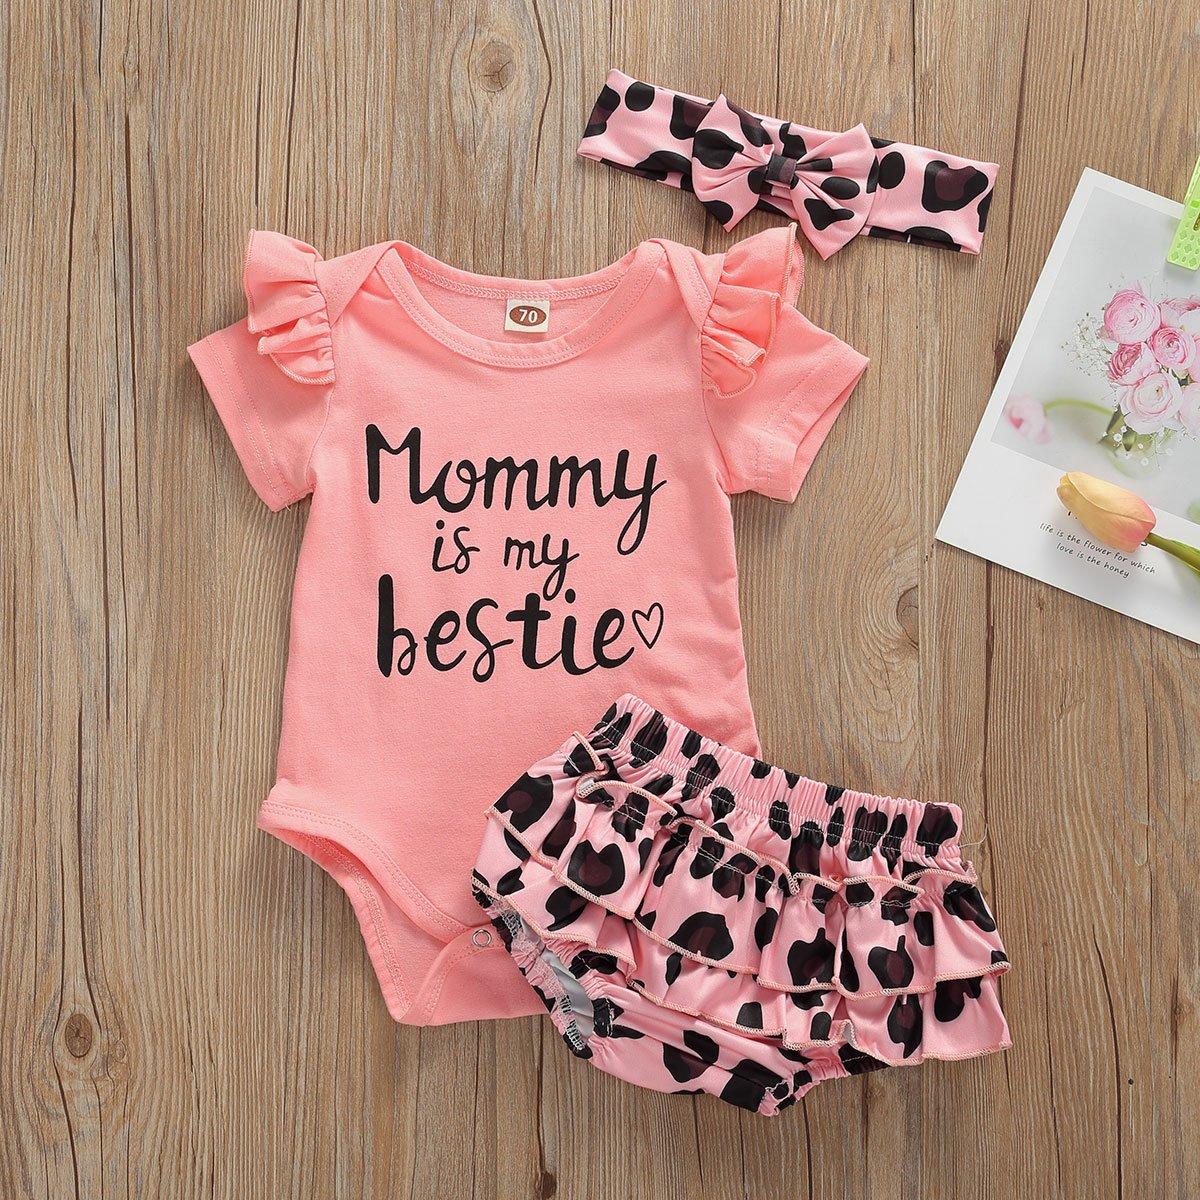 0-24 Months Newborn Infants Baby Girls Clothing Mommy is my bestie Pink Short Sleeve Bodysuit Playsuit Bow-Knot Headband Girl Outfits - OUTLATTE